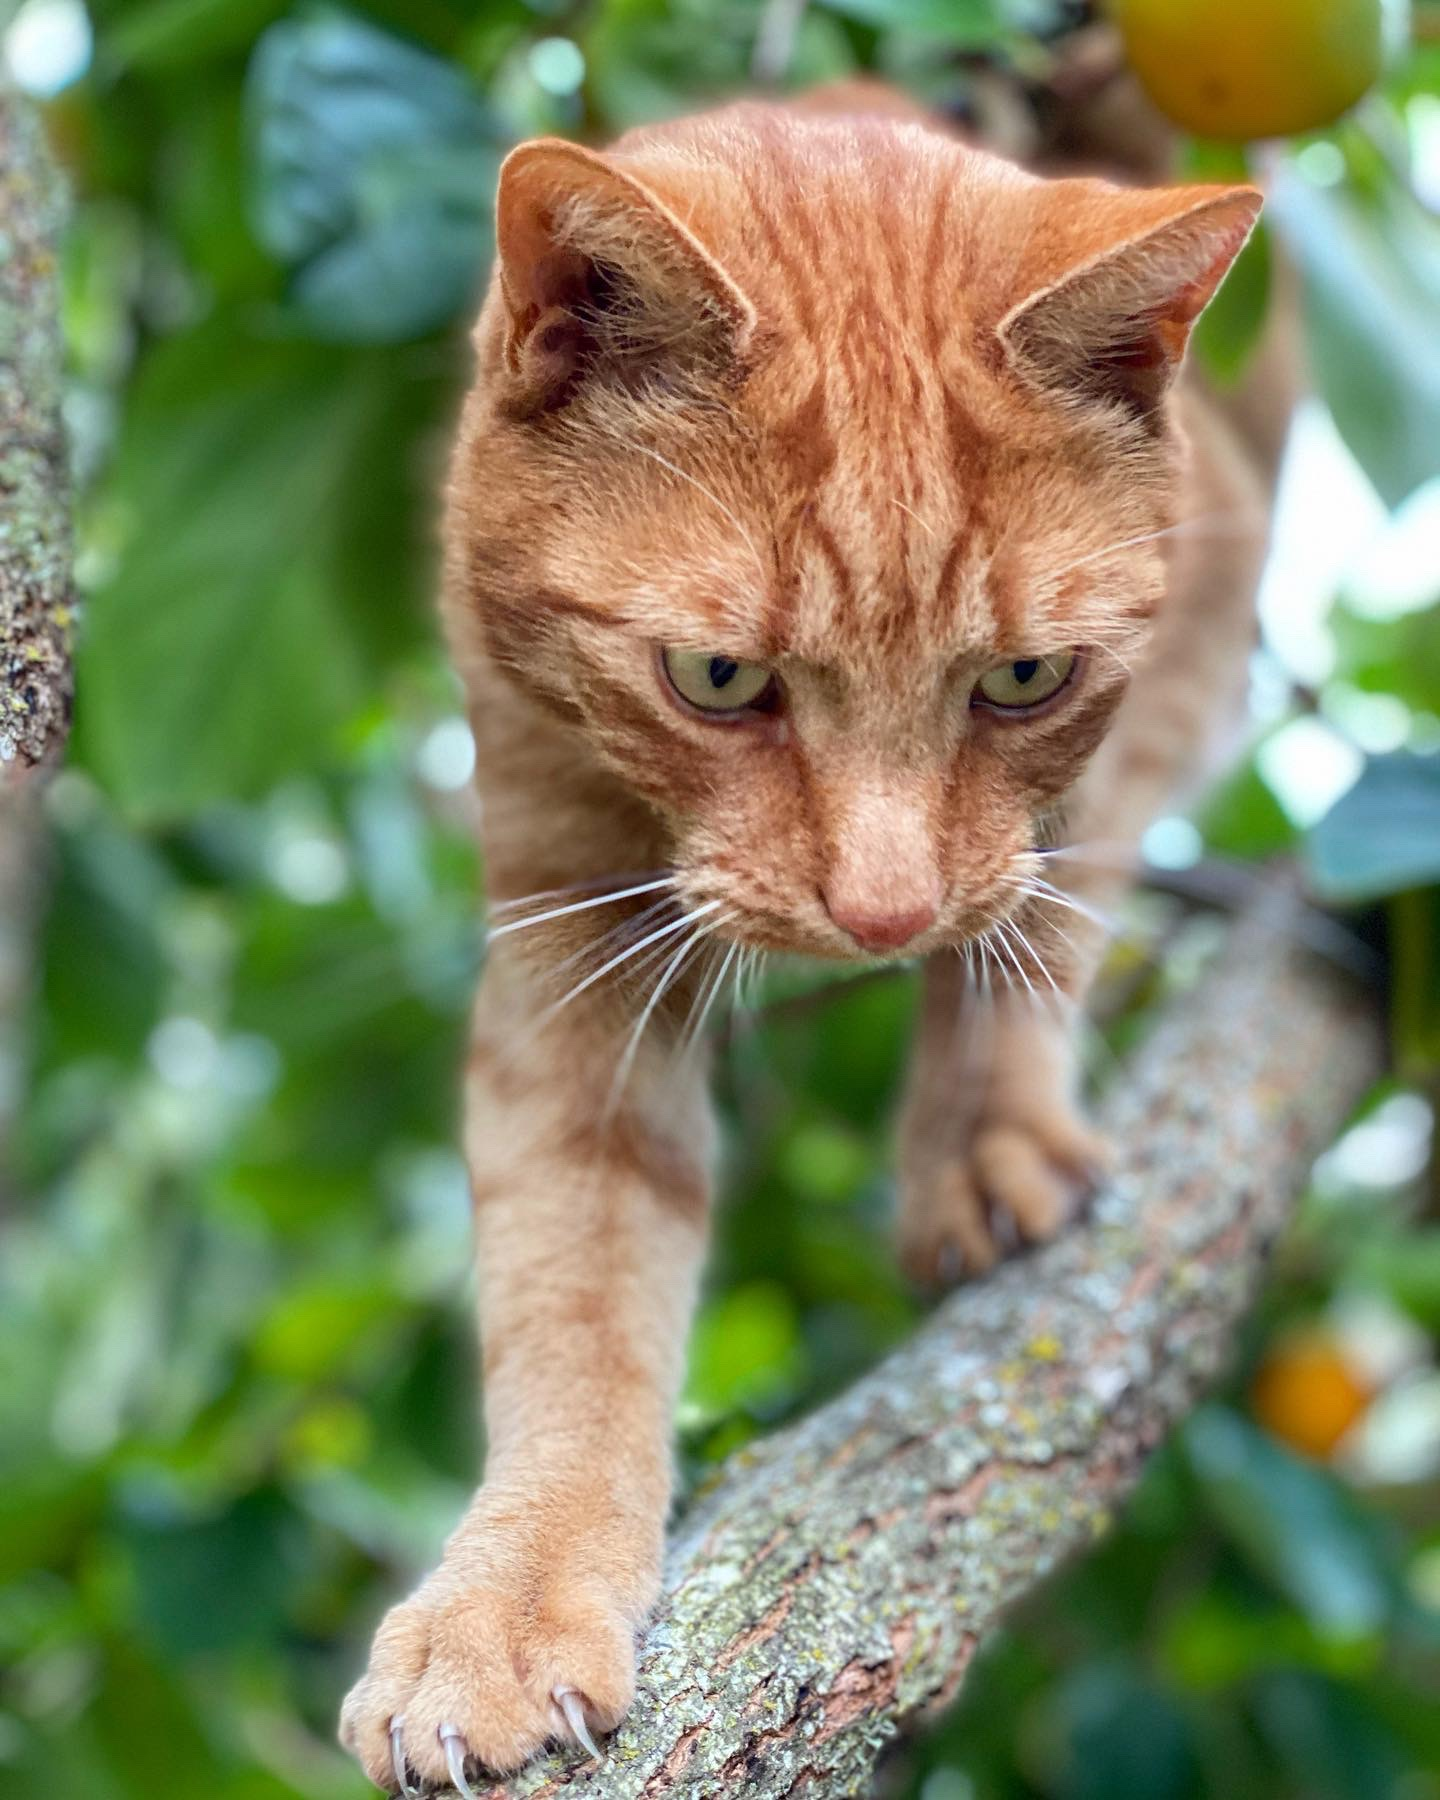 Jack the ginger cat stands on a branch in the persimmon tree with ripe fruit behind him